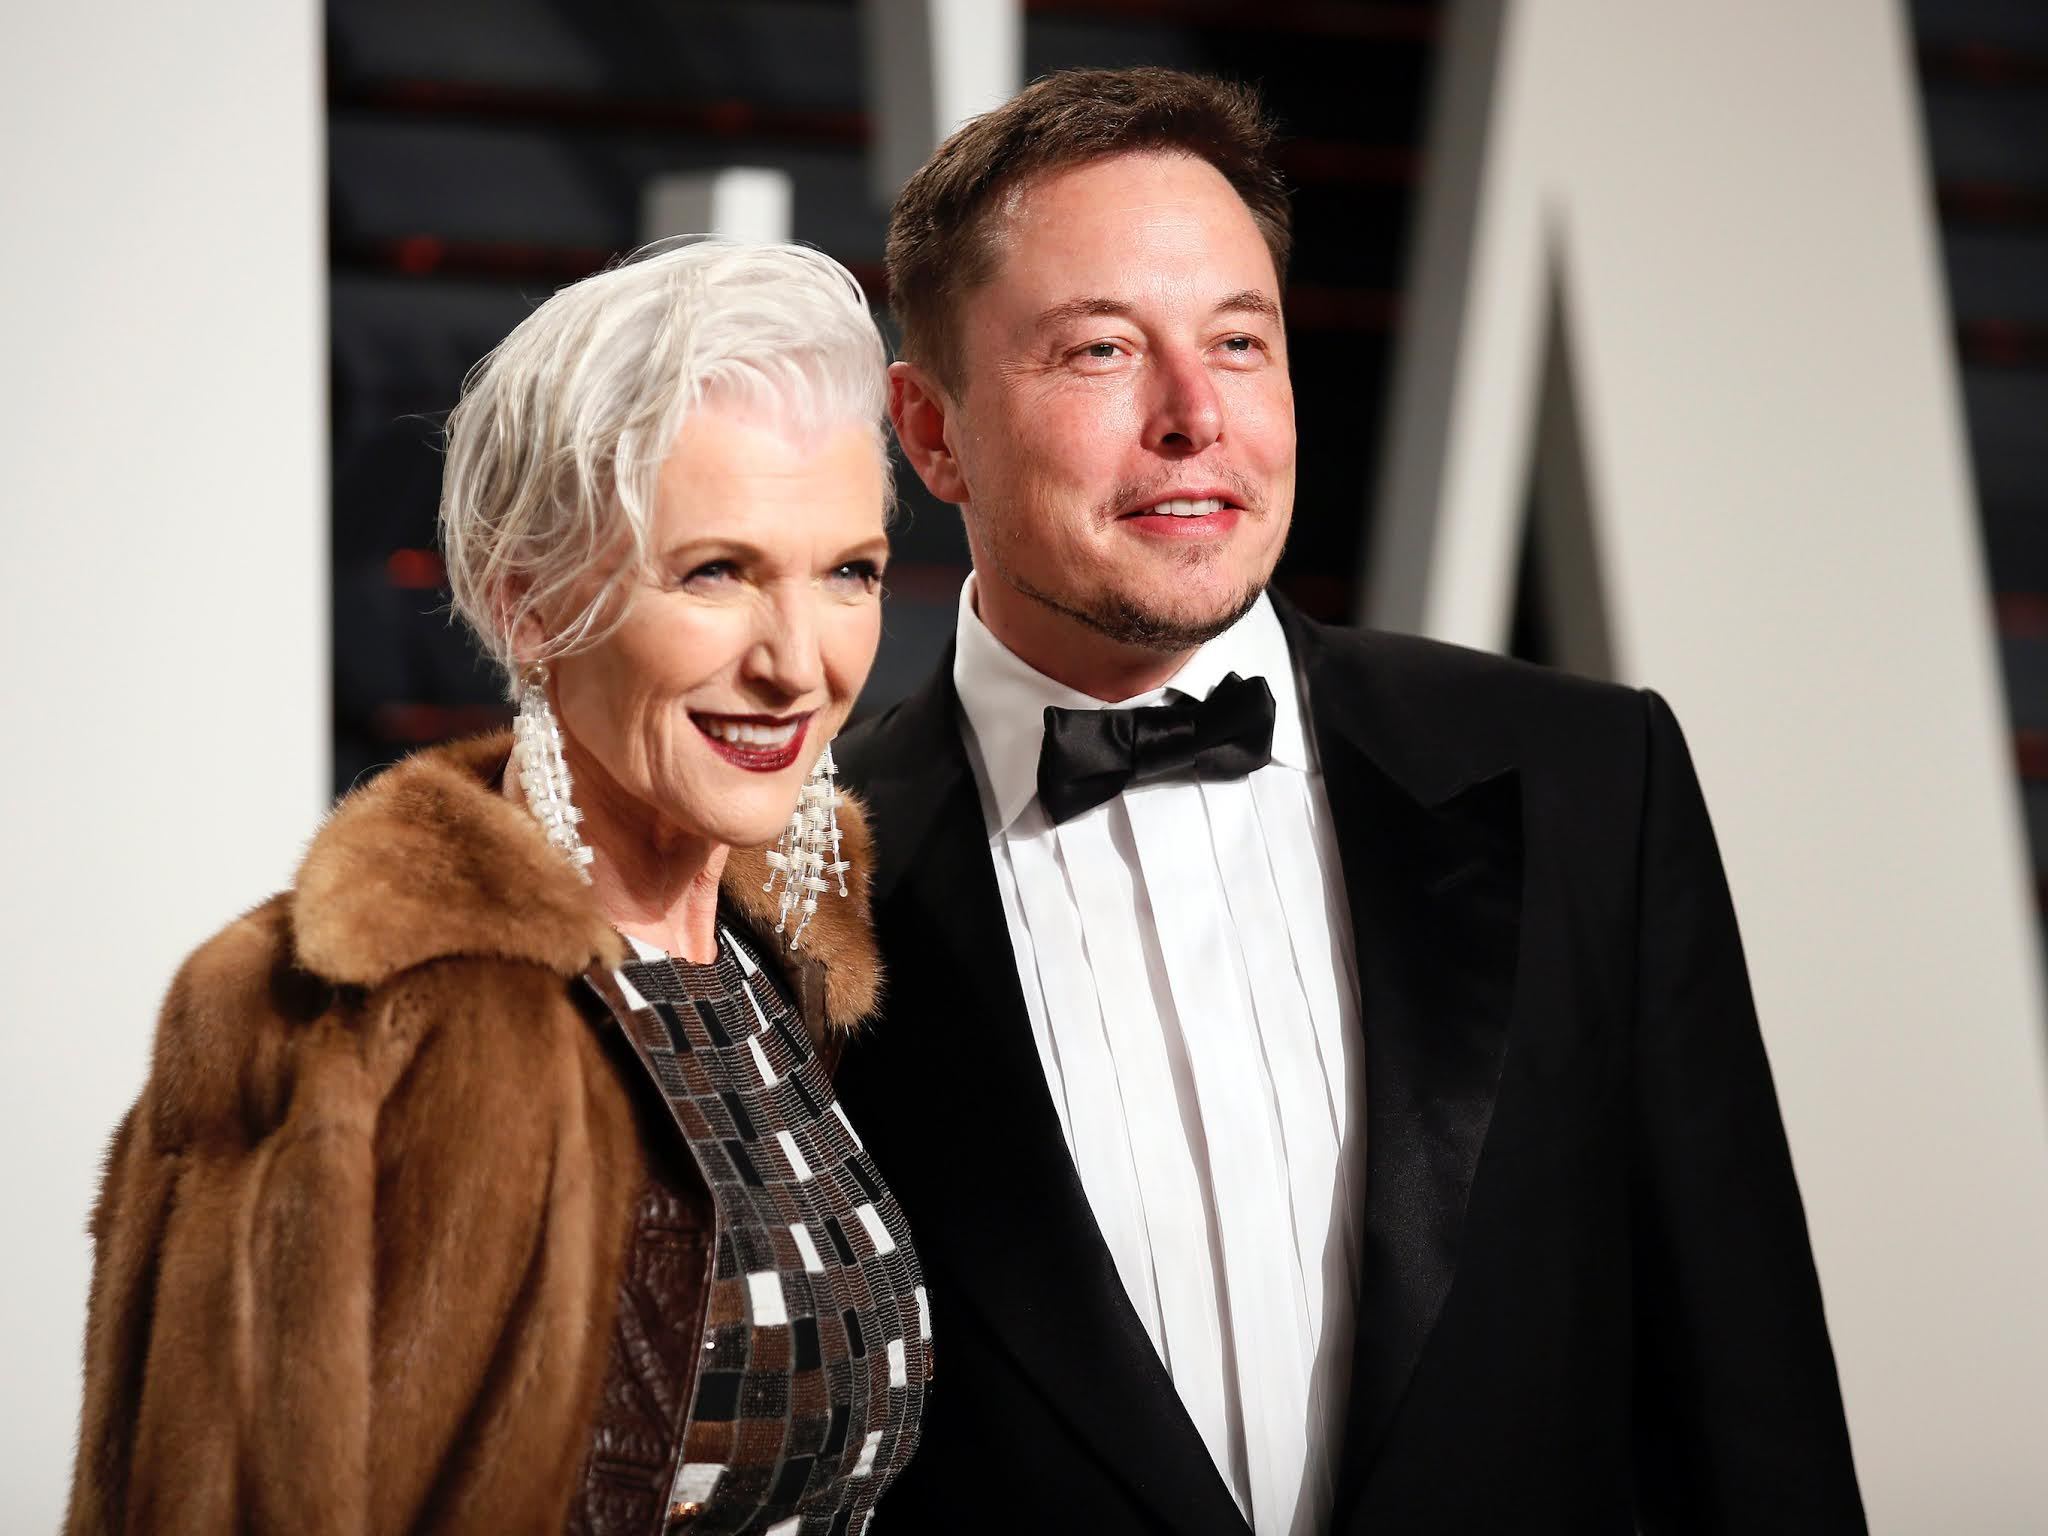 """May Mask, mother of Elon Musk, a famous model and expert in raising """"geniuses""""."""